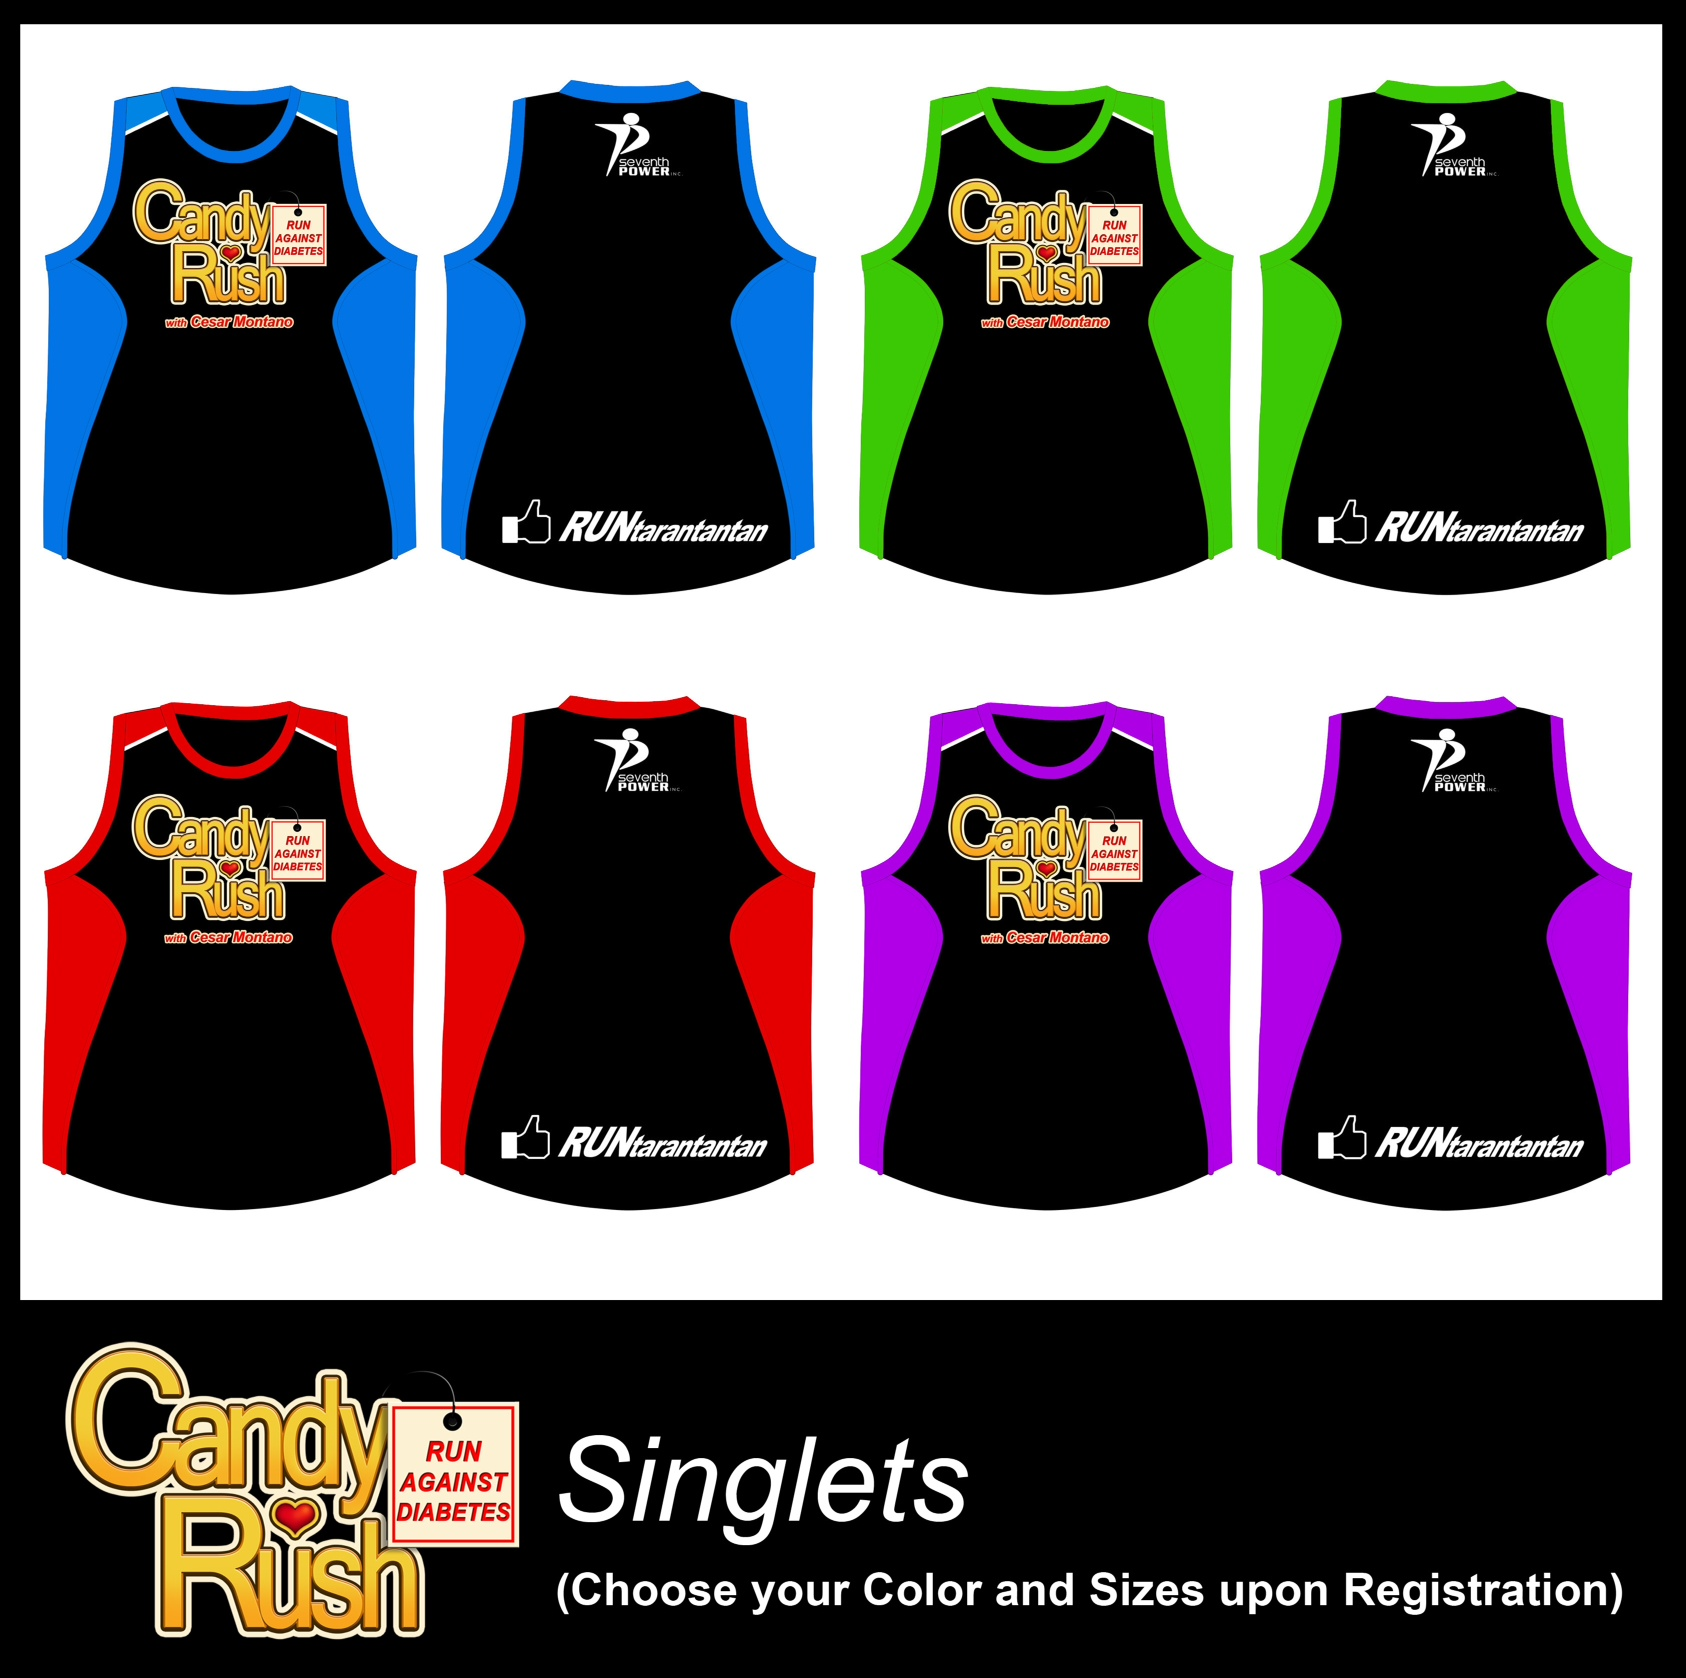 candy-rush-2013-singlet-design